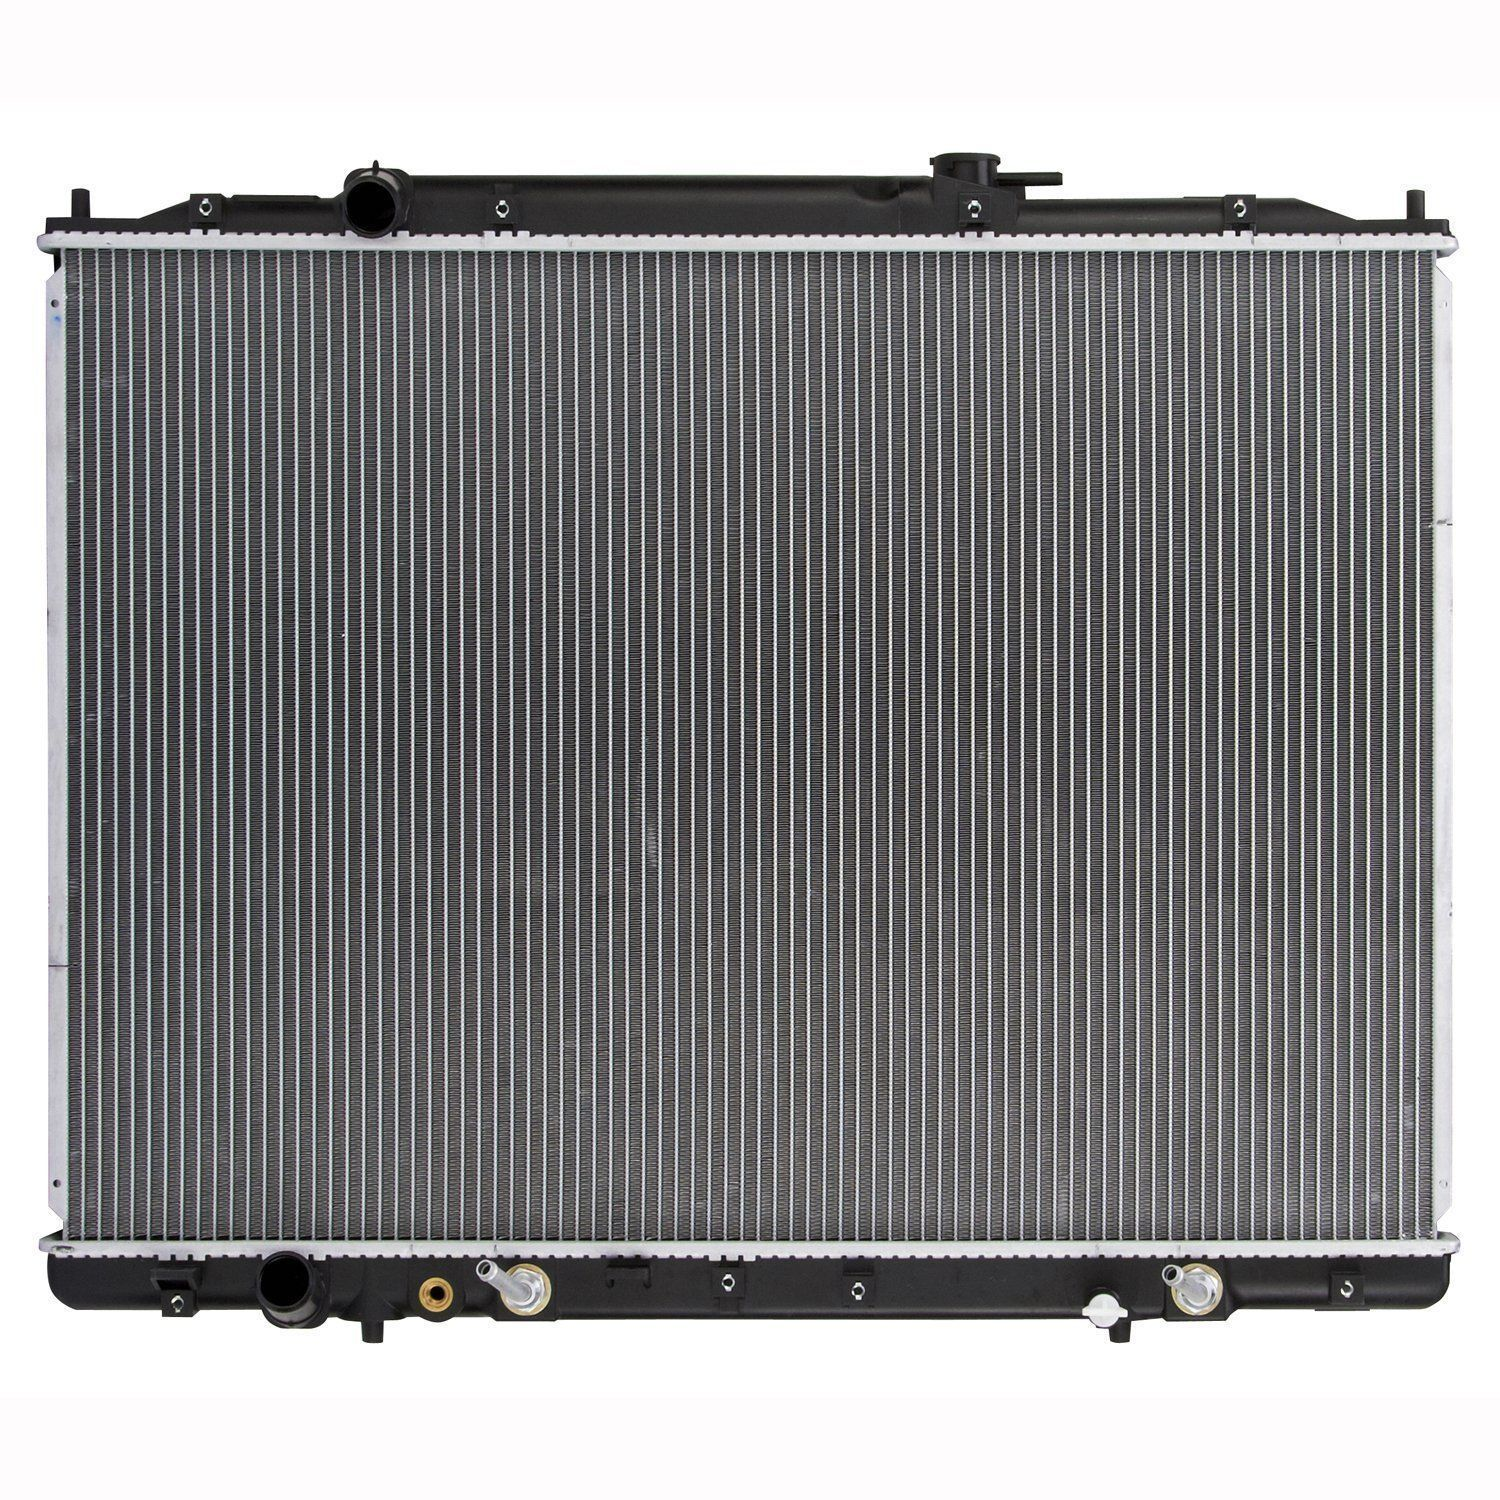 Radiator 13065 For Honda Pilot Ridgeline 2009-2015